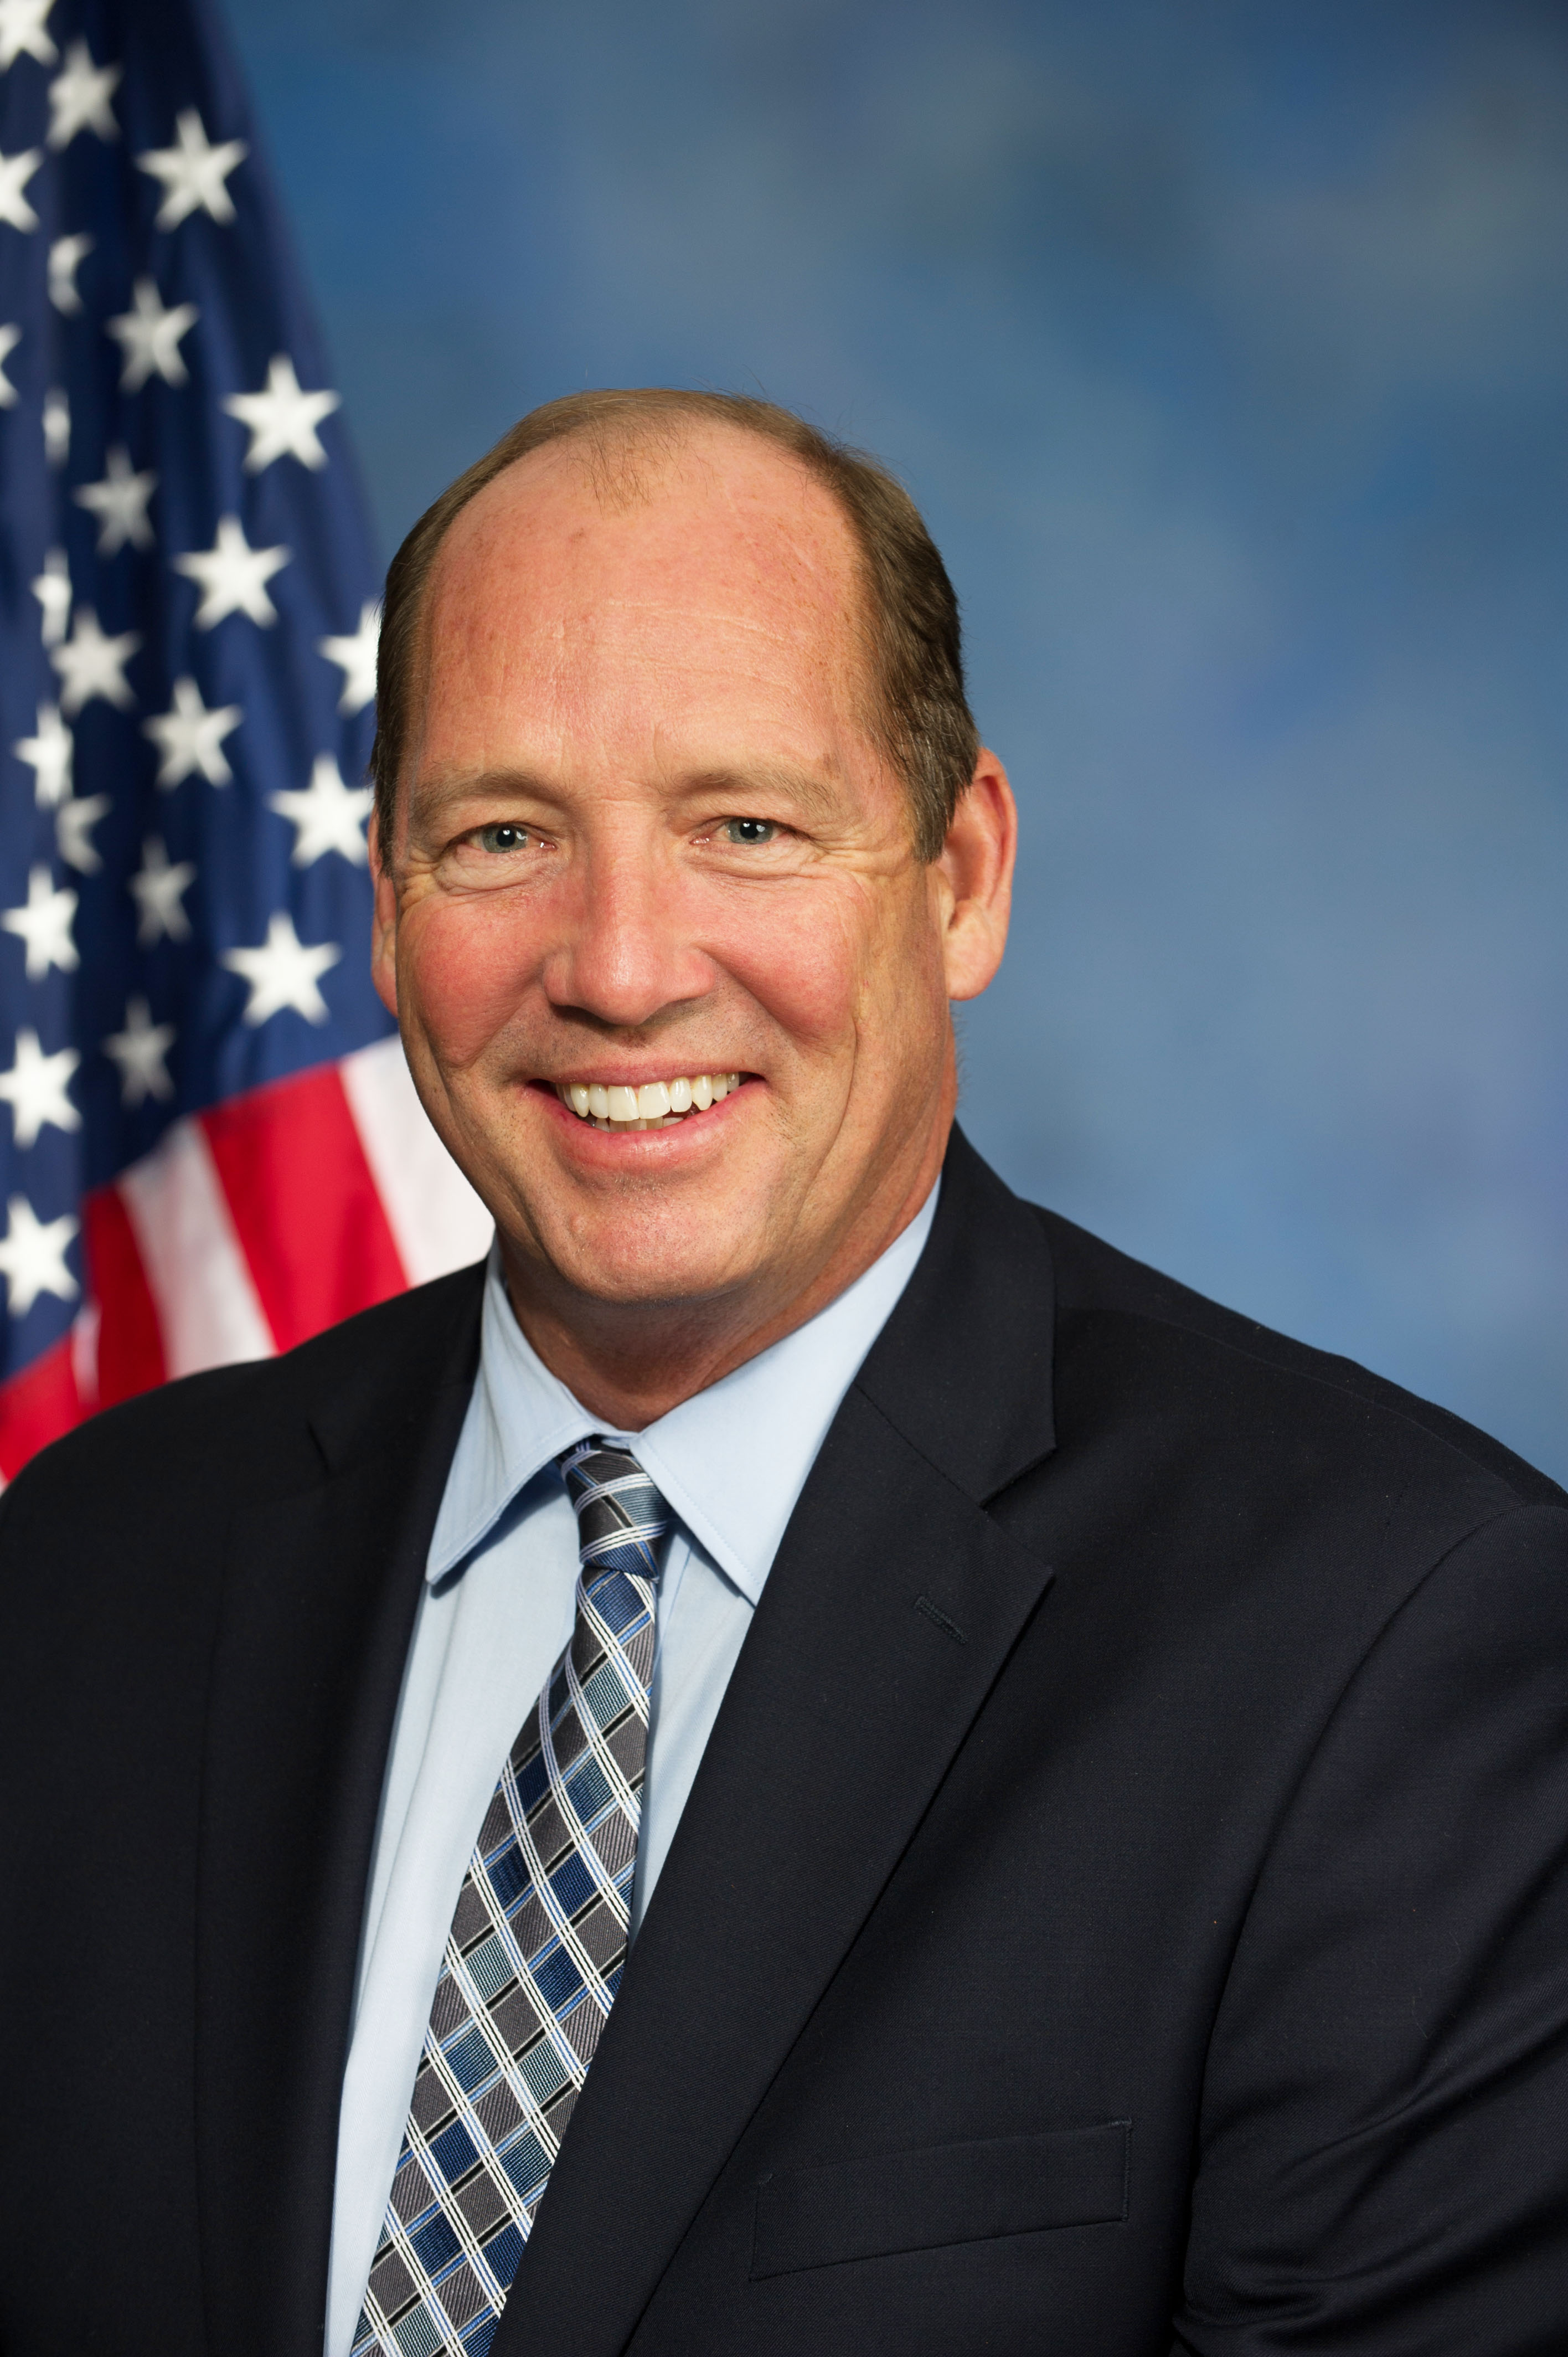 File:Ted Yoho, official portrait, 113th Congress.jpg - Wikimedia ...